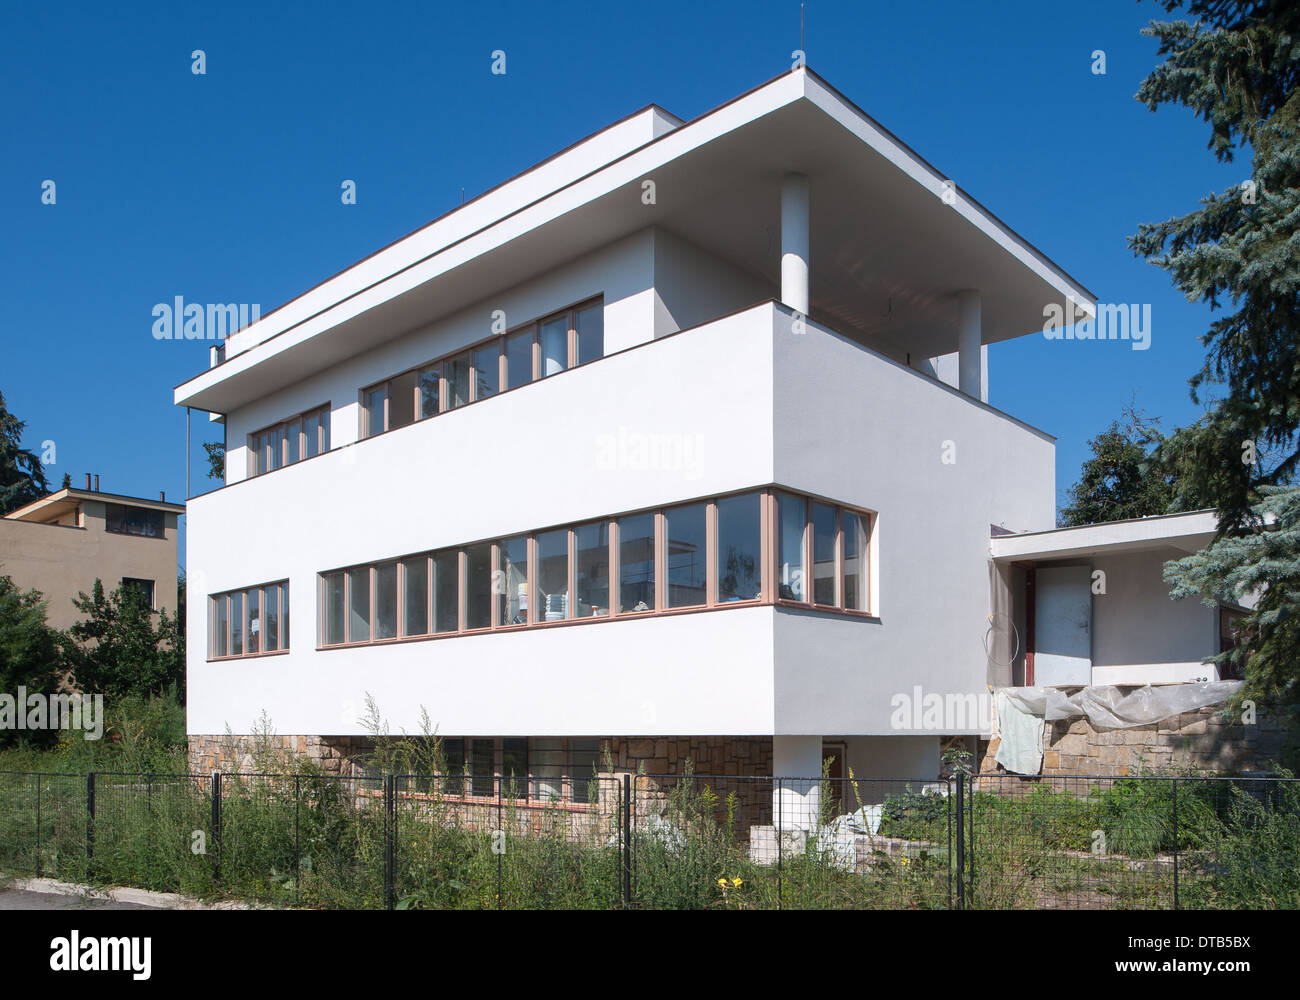 Bauhaus Villa Bauhaus Villa Stock Photos Bauhaus Villa Stock Images Alamy